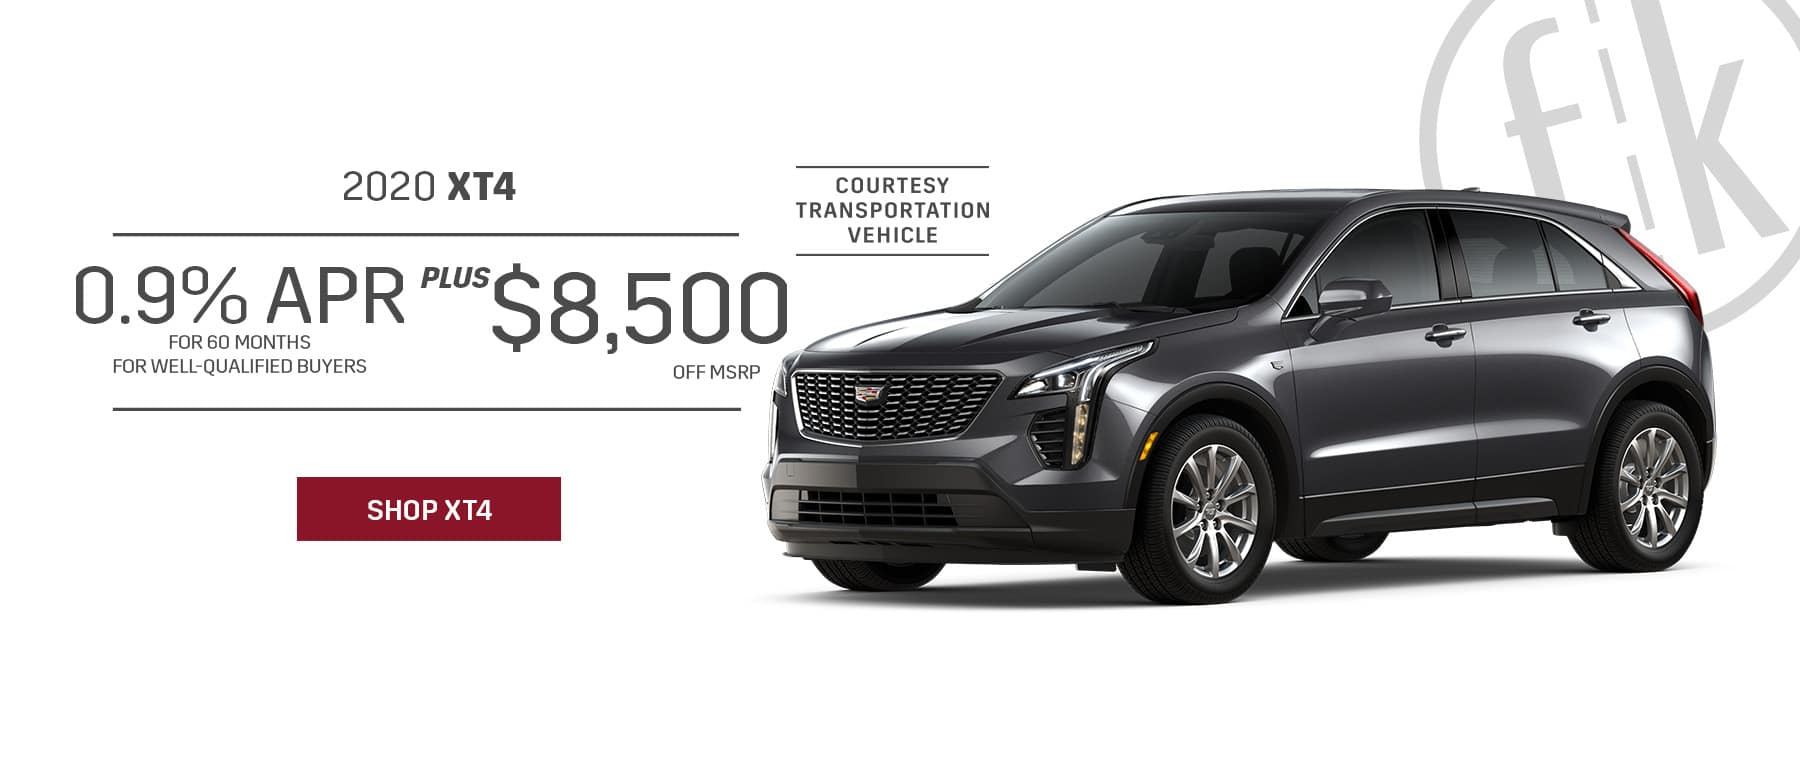 0.9% for 60 mos. PLUS $8,500 Off 2020 XT4 Retired Loaners